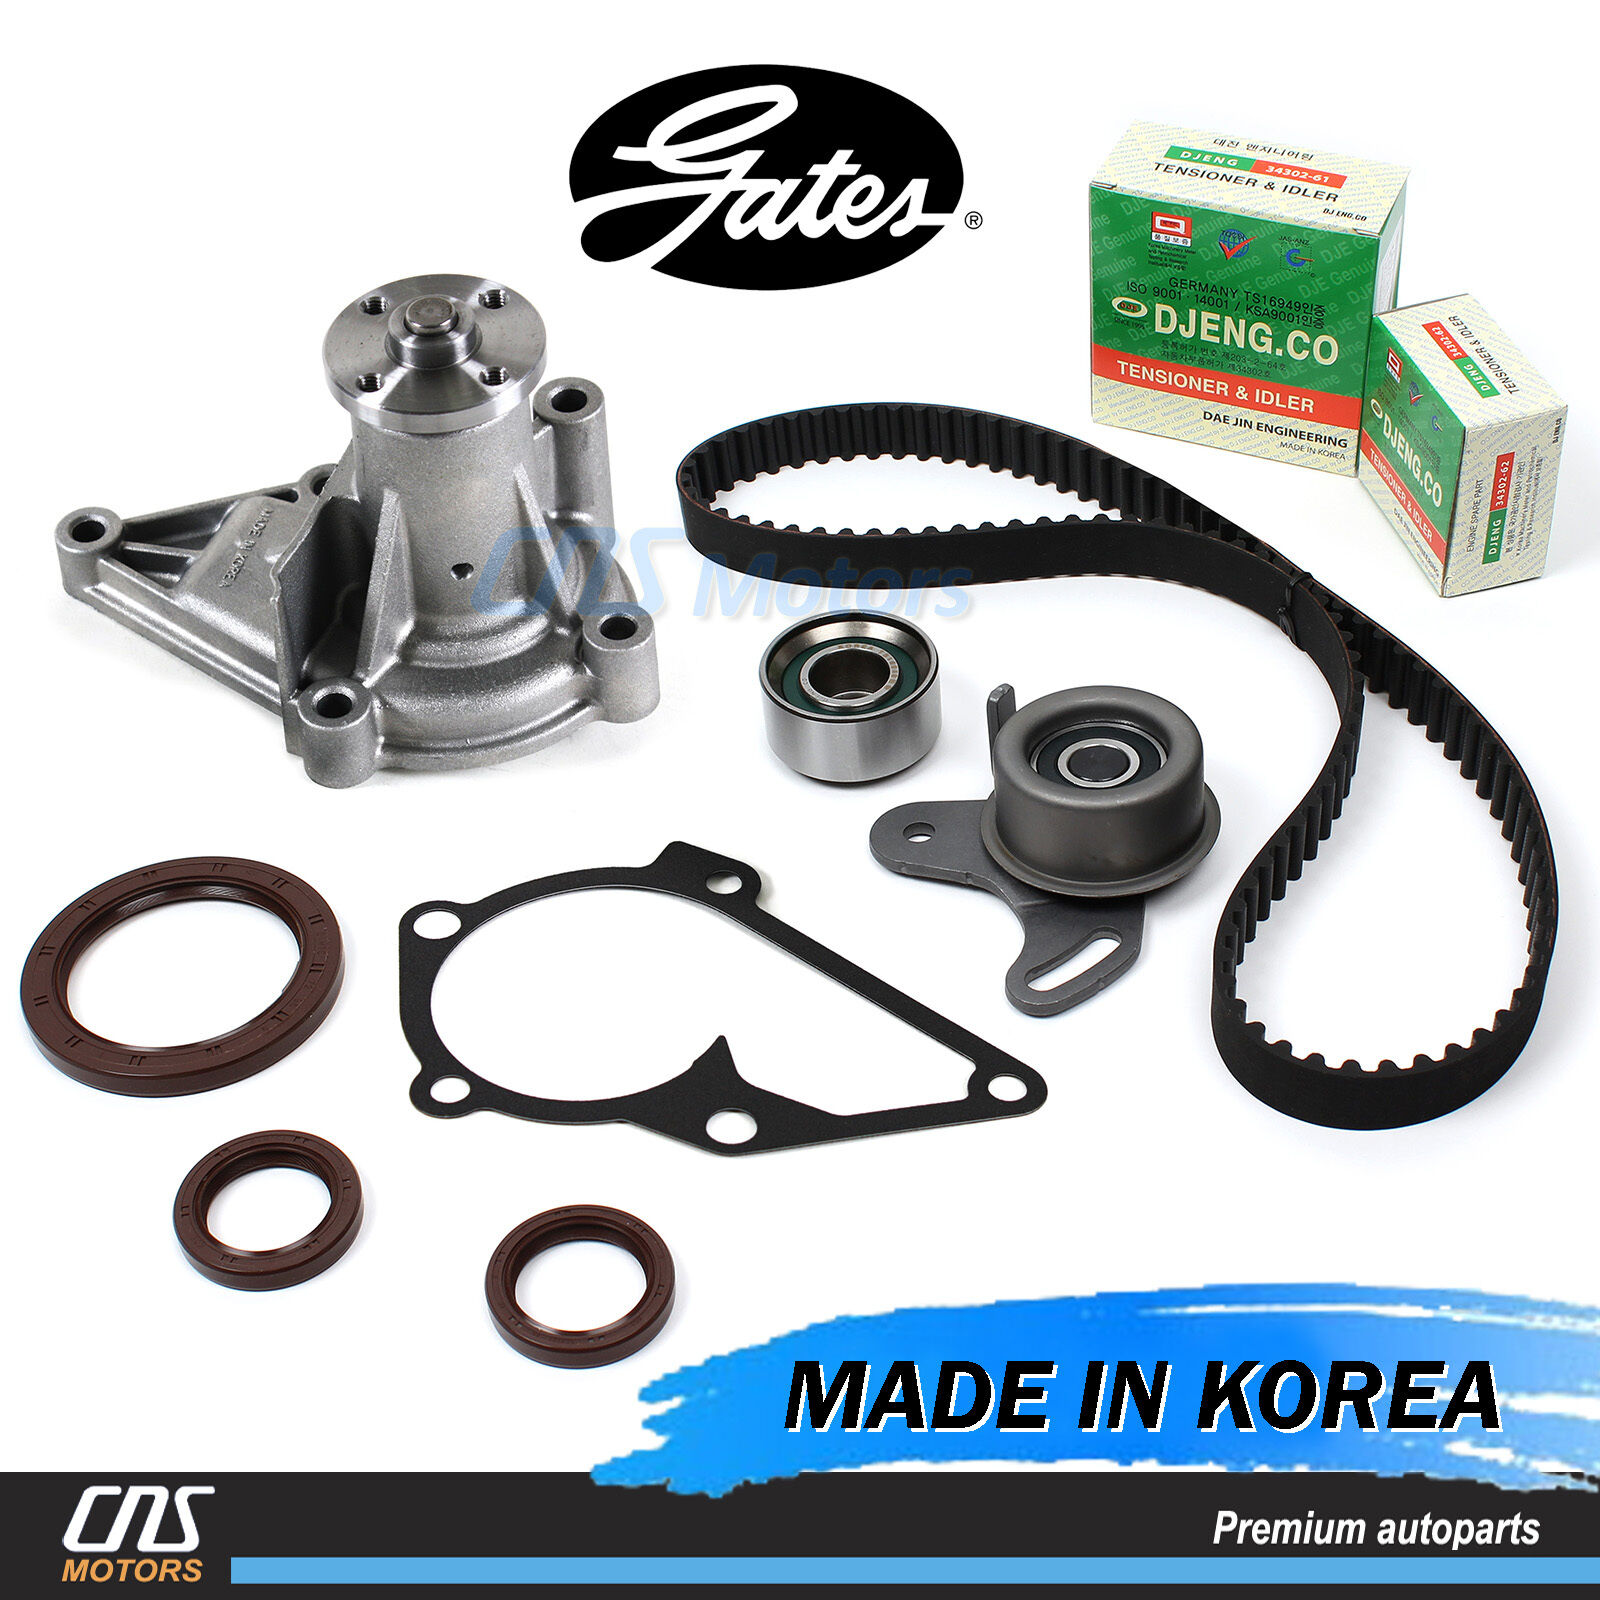 Gates Htd Timing Belt Water Pump Kit For 96 11 Hyundai Accent Kia 1999 Sportage 1 Of 5only 0 Available